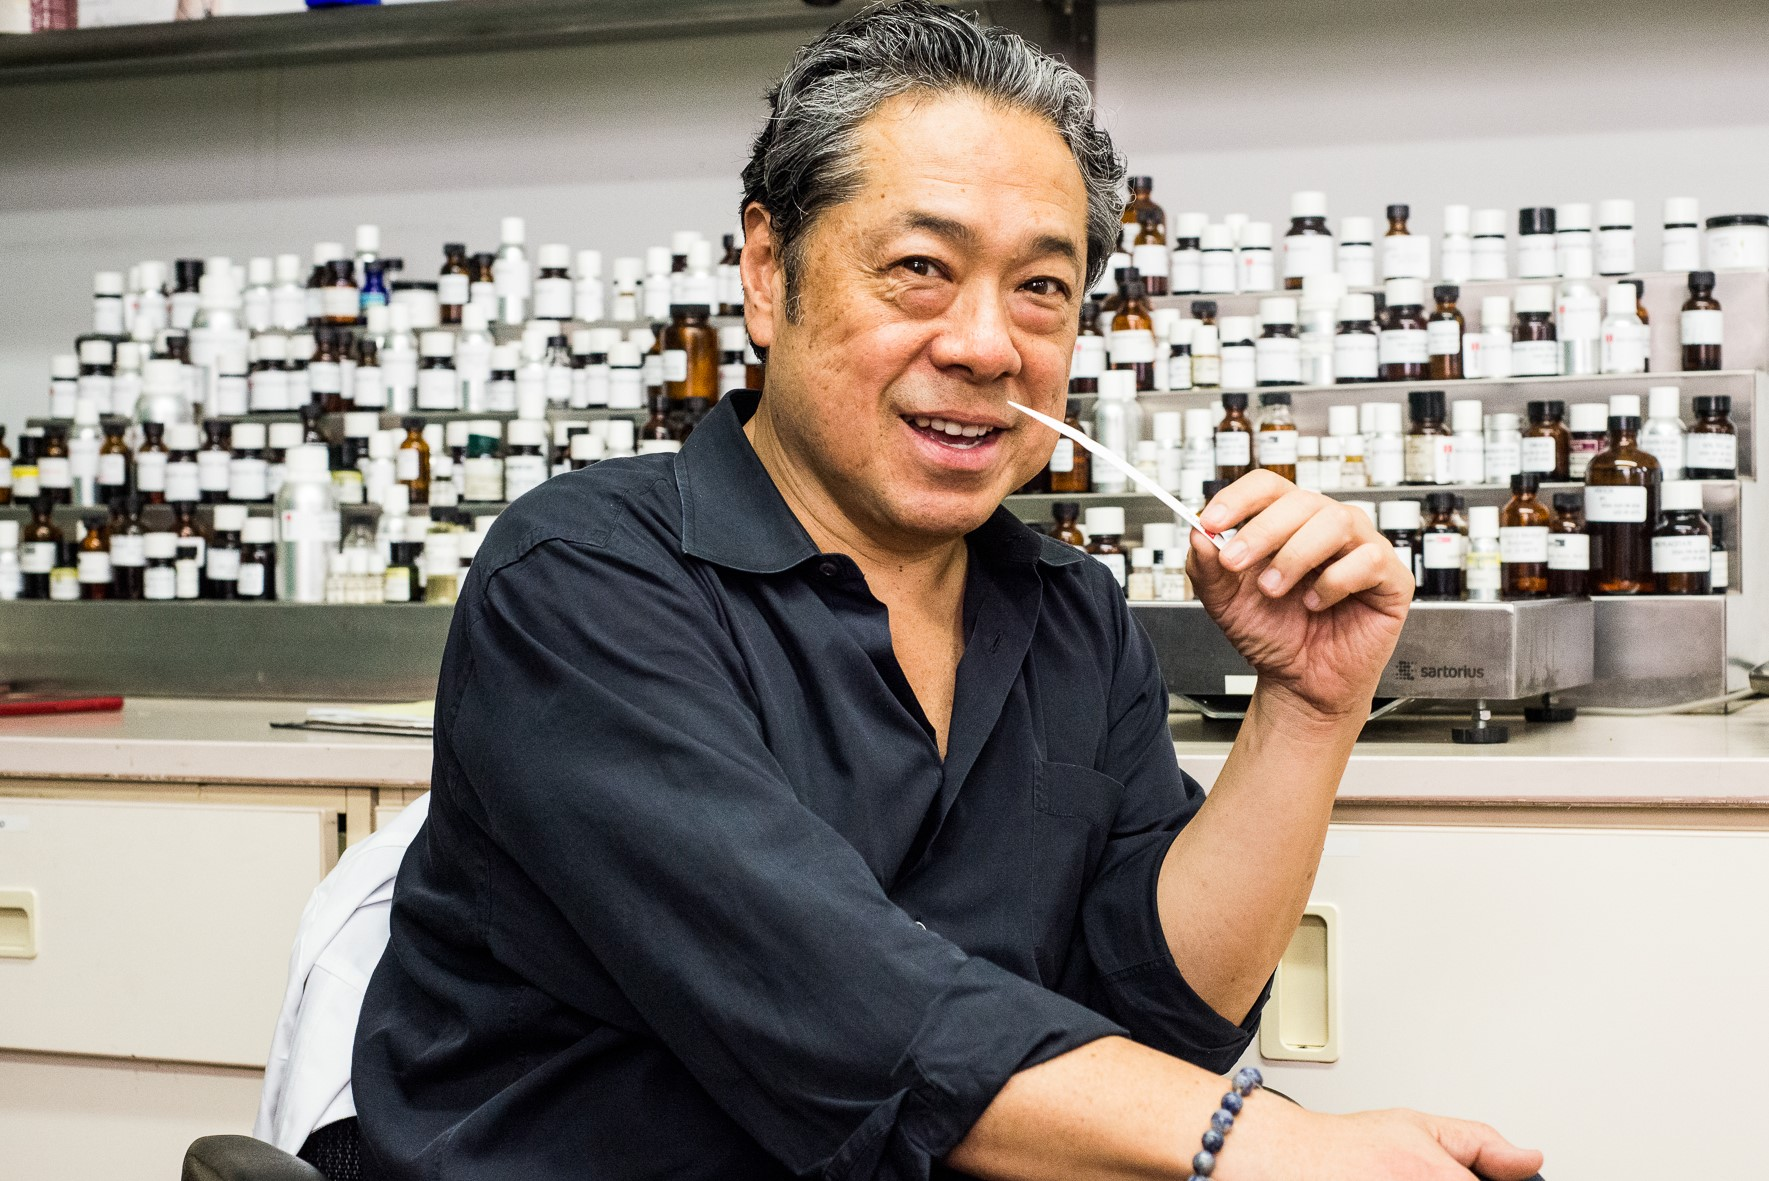 Darryl Do - Born into this industry, Darryl Do is a New York-based perfumer/flavorist (chemist) and regulatory expert. He has created fragrances for global brands including Caswell Massey, DS & Durga, Takashimaya, Hilton Hotels, Standard Hotel, Intercontinental Hotel Barclay NY, and Perfumarie.Darryl also teaches perfumery at FIT SUNY and Kent State University. He speaks globally on cosmetics compliance regulations and CBD/hemp beauty.He is a member of American Society of Perfumers, WFFC Associate member, Past Board Member of Cosmetic Industry Buyers & Suppliers, Fashion Group International, NY Society of Cosmetic Chemists.